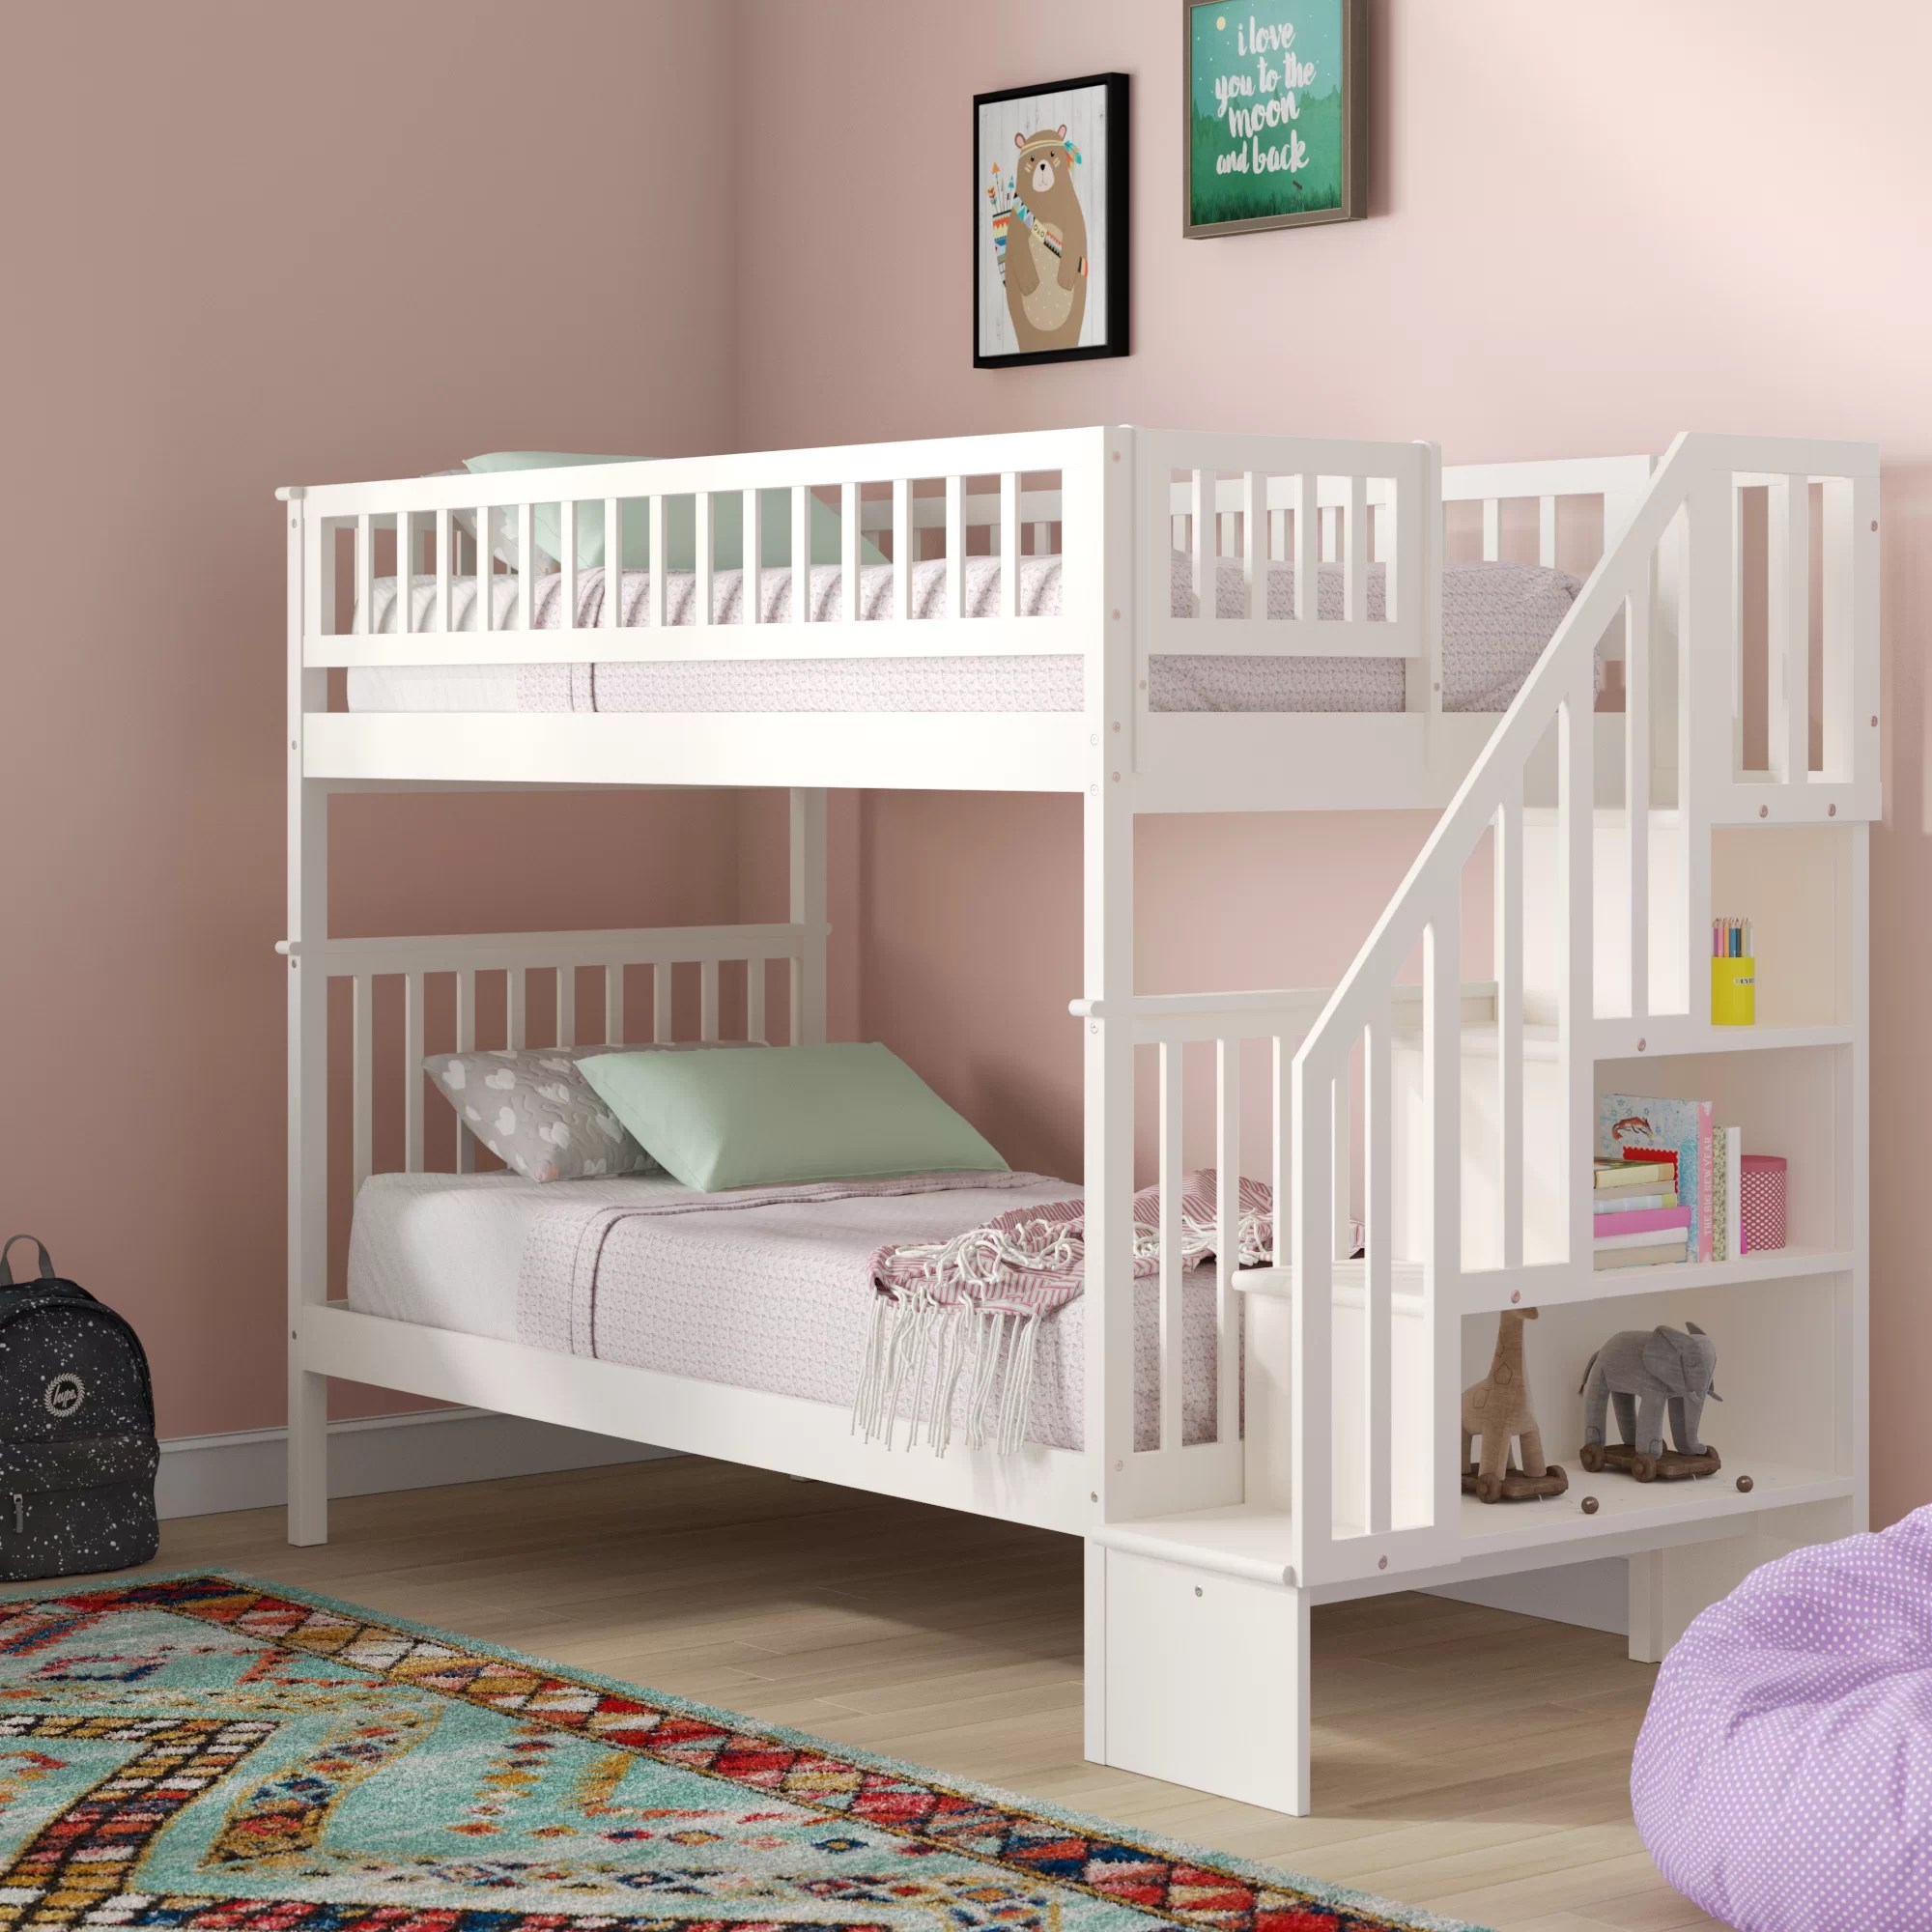 Snooze Bunk Beds Shyann Twin Over Twin Bunk Bed